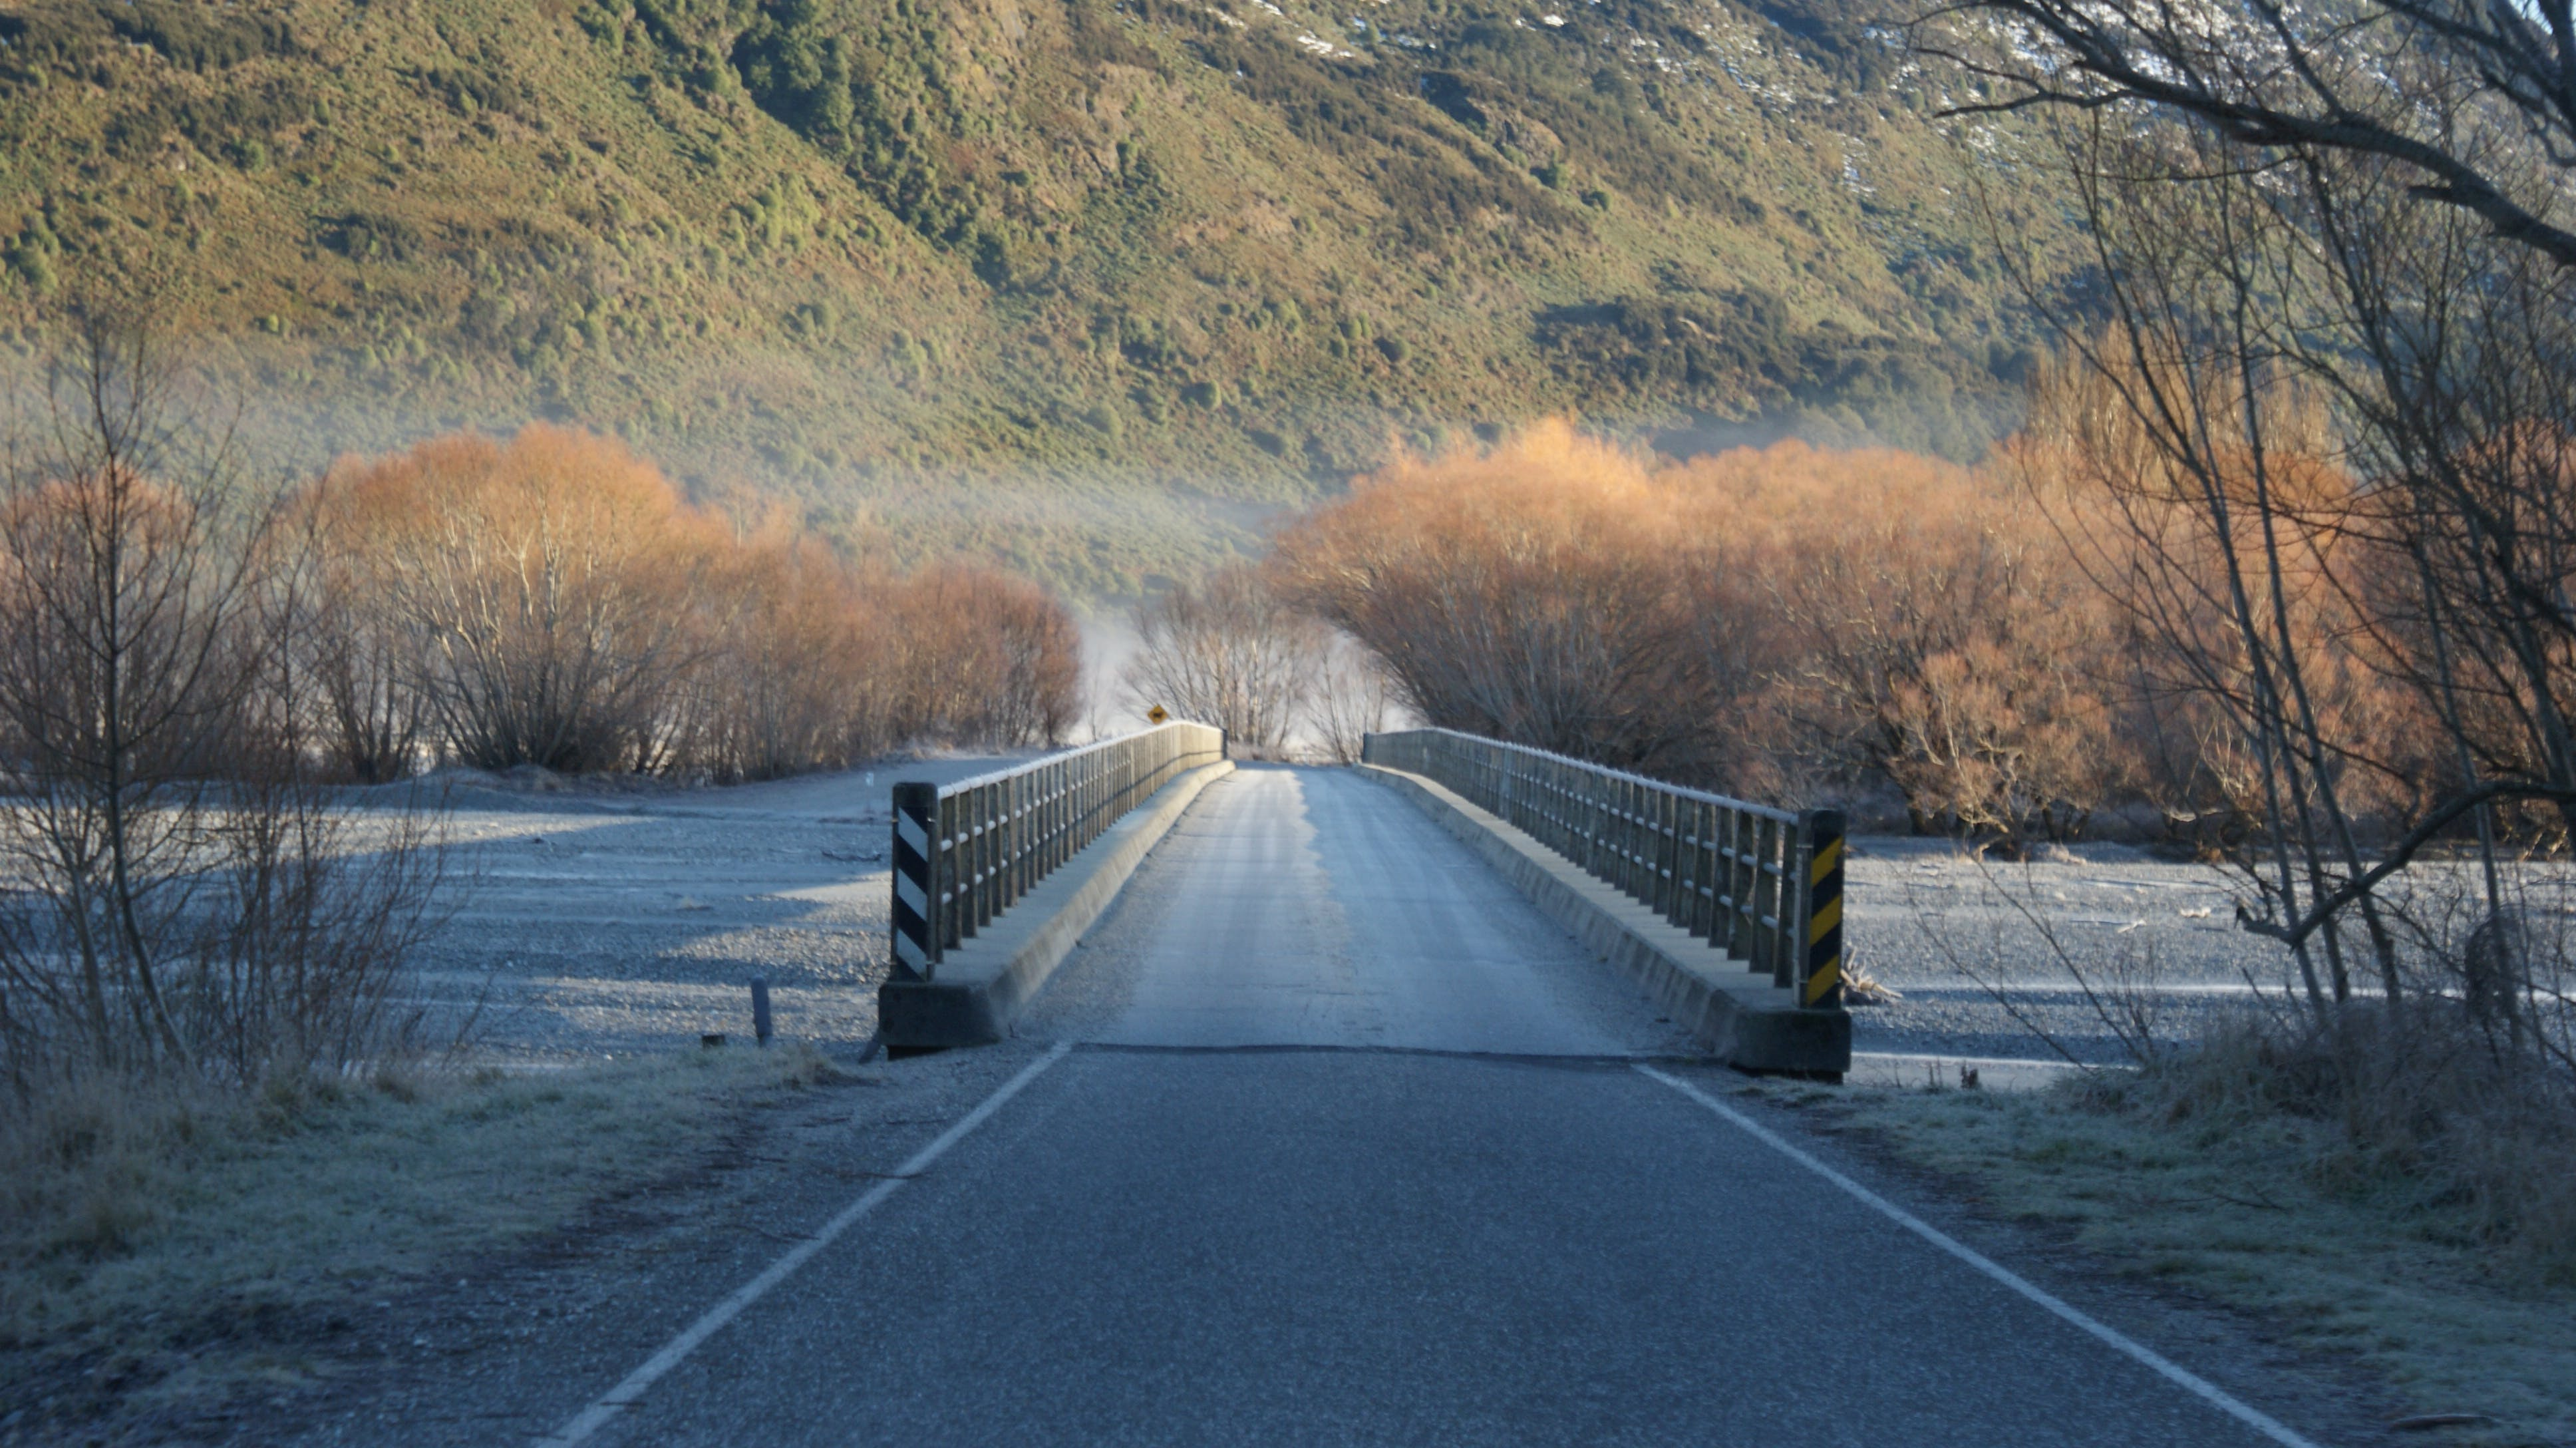 Free Road on the Bridge With View of Mountain